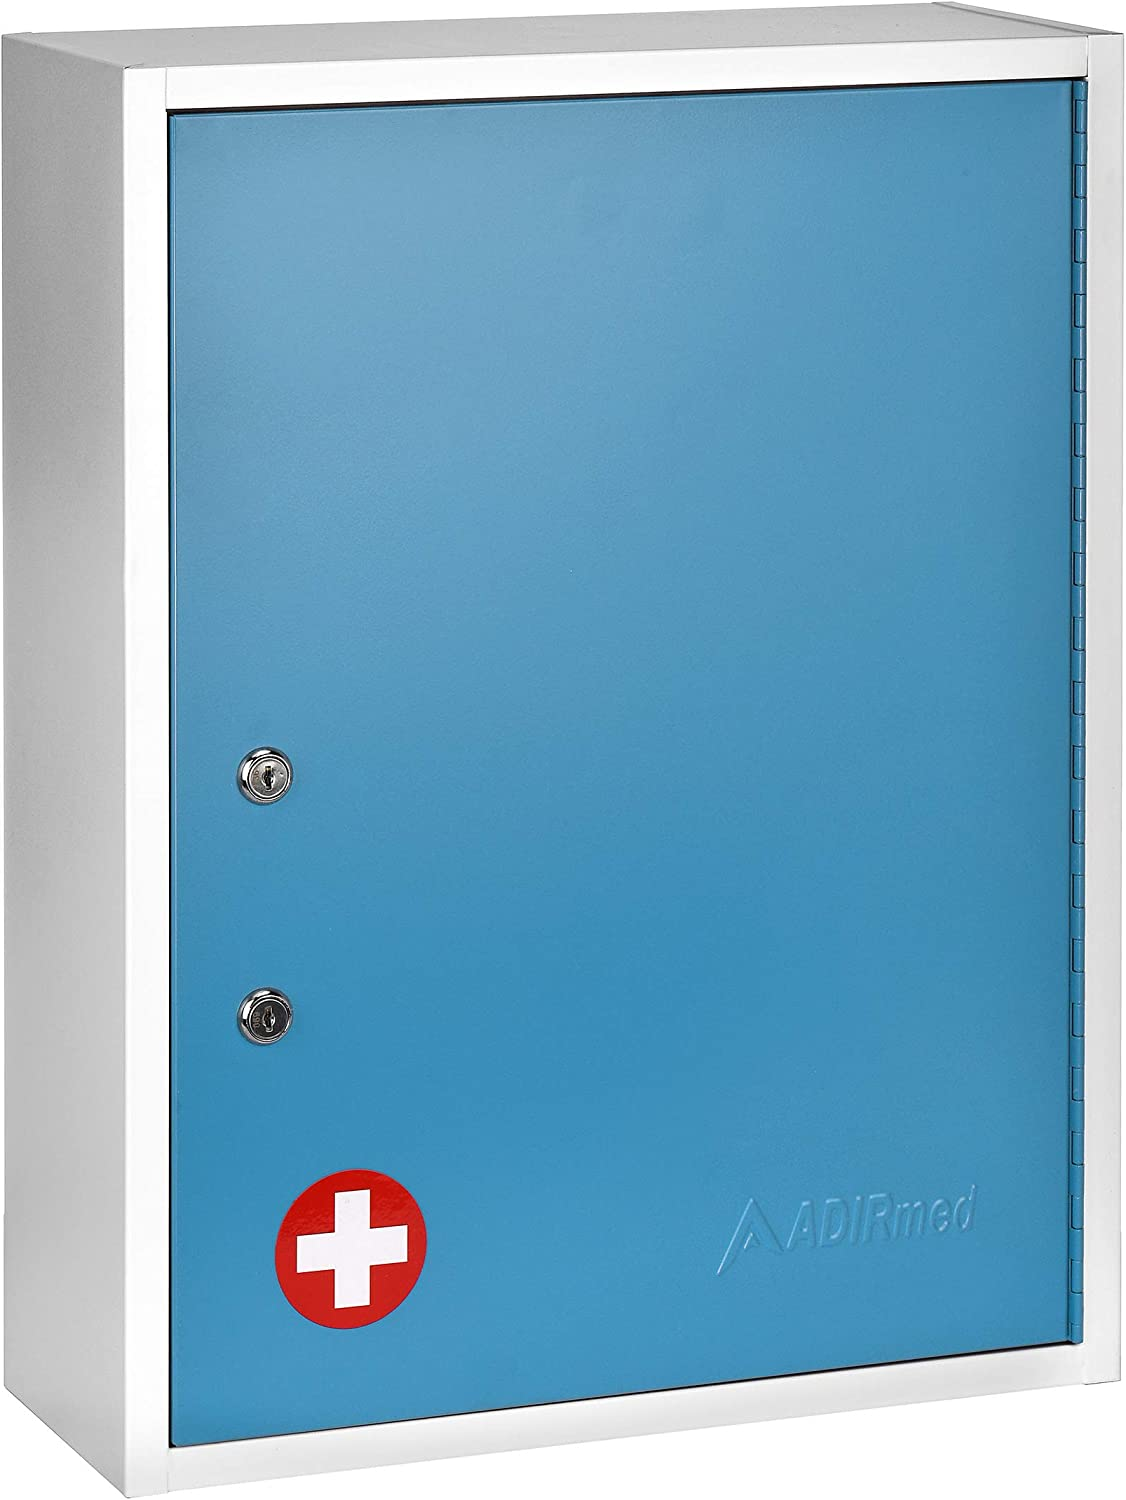 AdirMed Large Dual-Lock Medicine Cabinet – Wall Mounted & Secure Steel Medicine Pills & First Aid Kit & Emeergency Kit Box with Locks for Home Office & School Use (Blue)